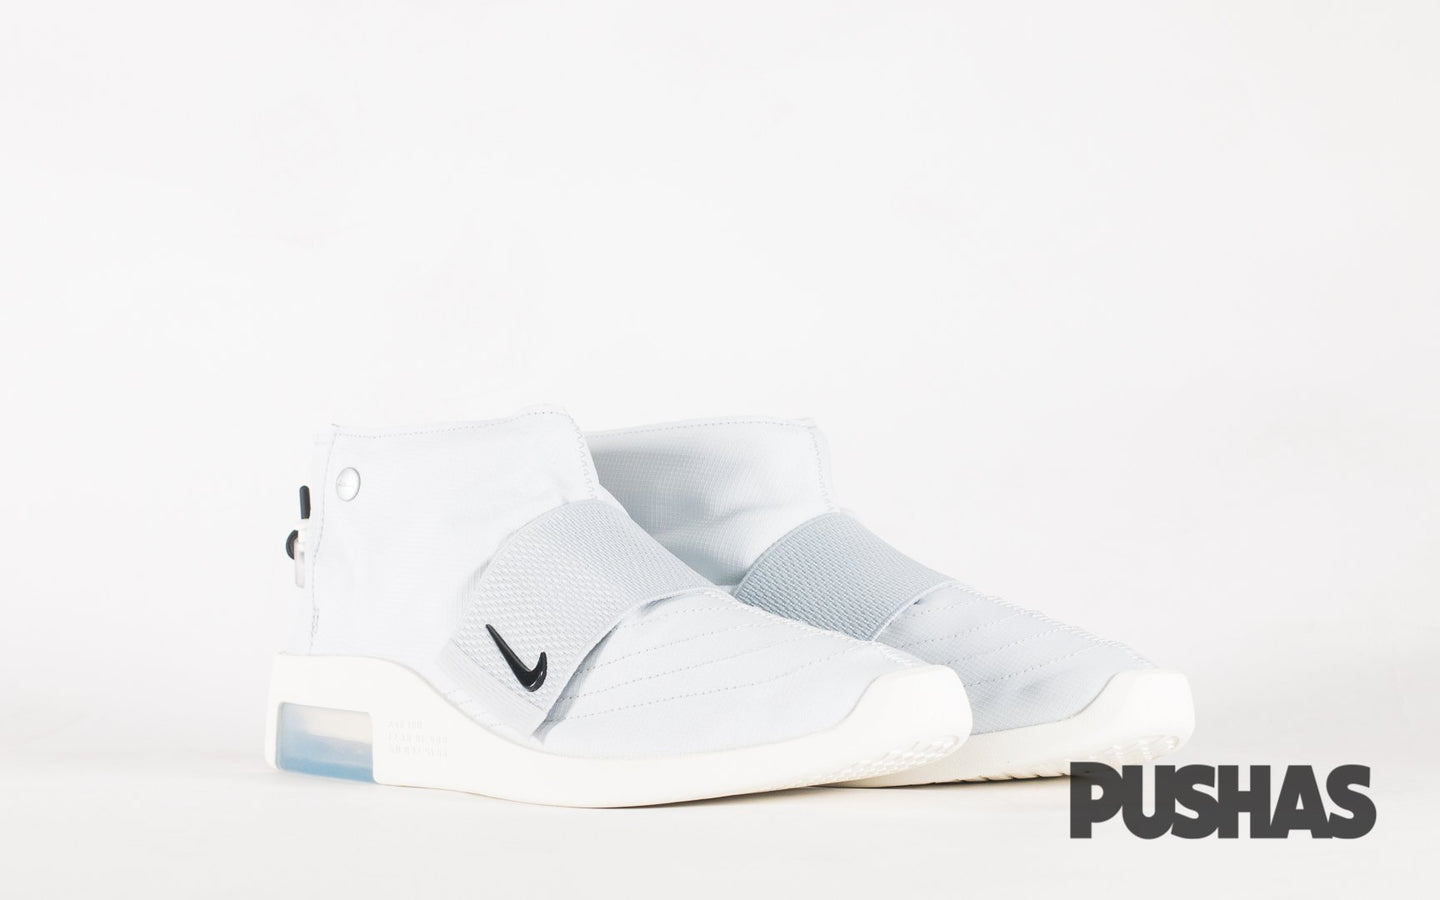 pushas-Nike-Air-Fear-of-God-MOC-Bone